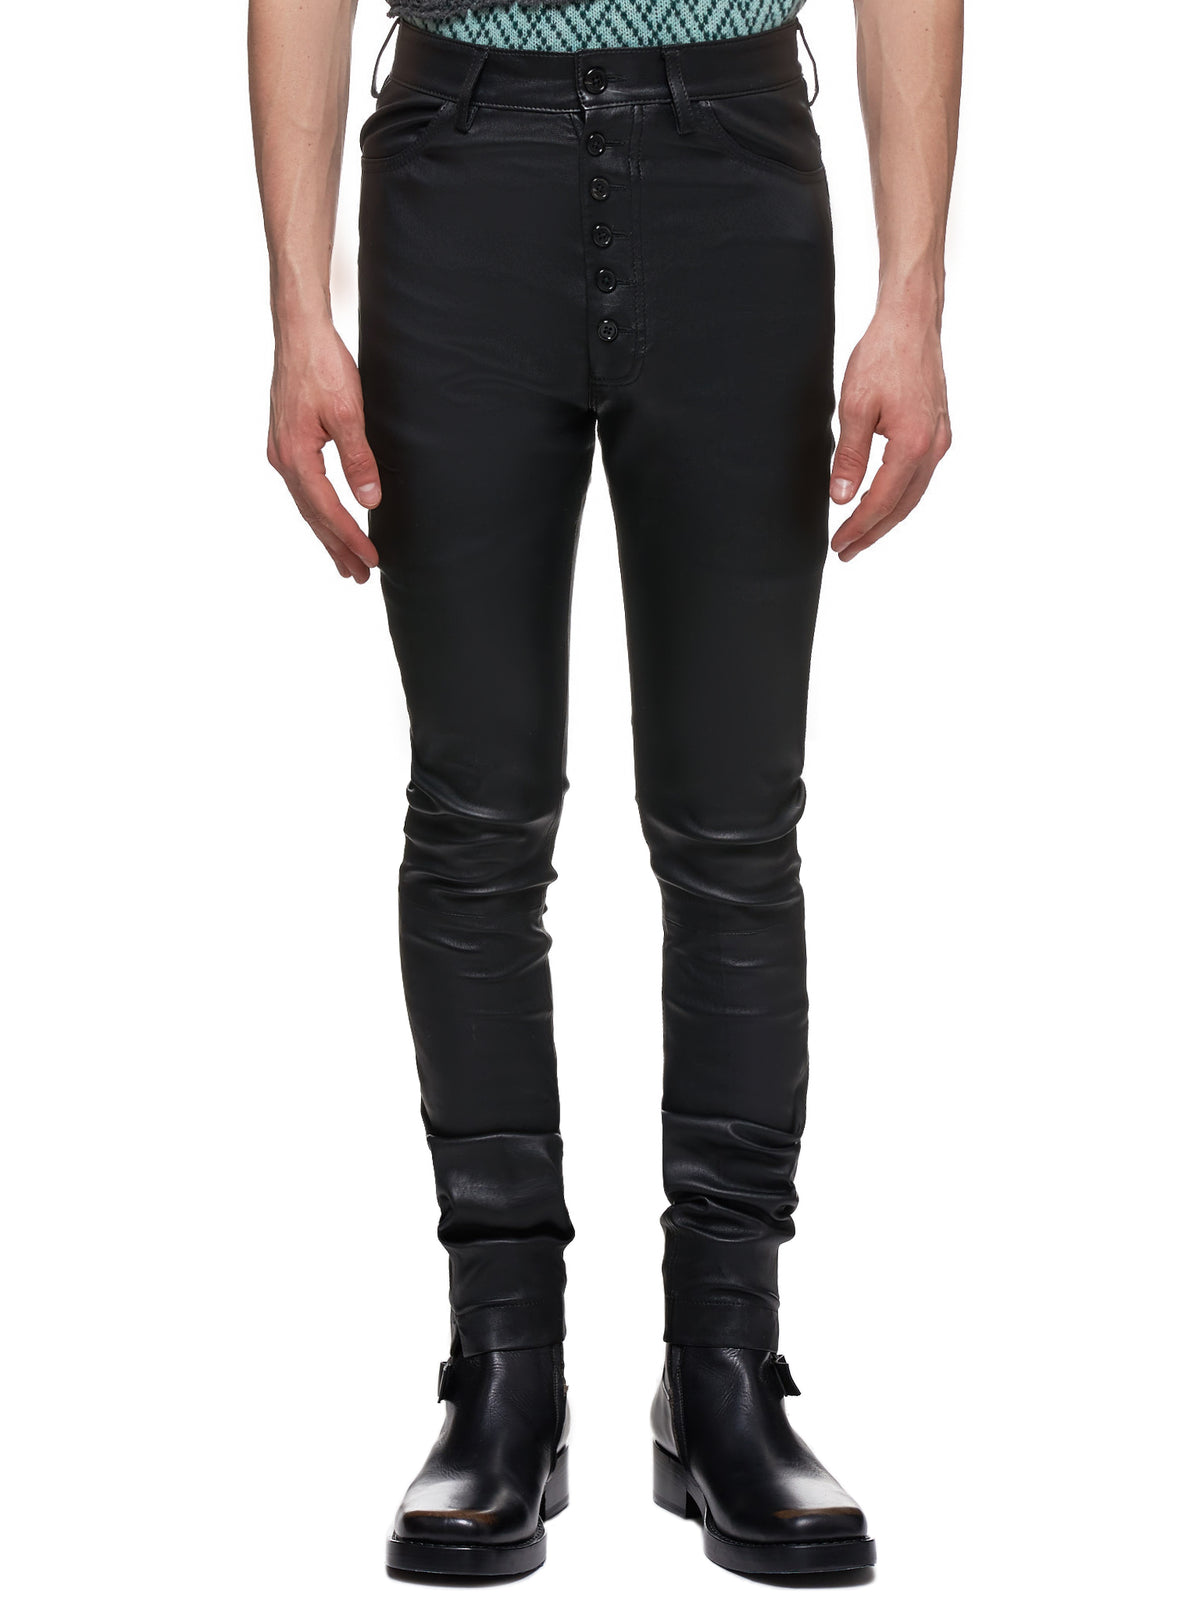 Ann Demeulemeester Leather Pants - Hlorenzo Front